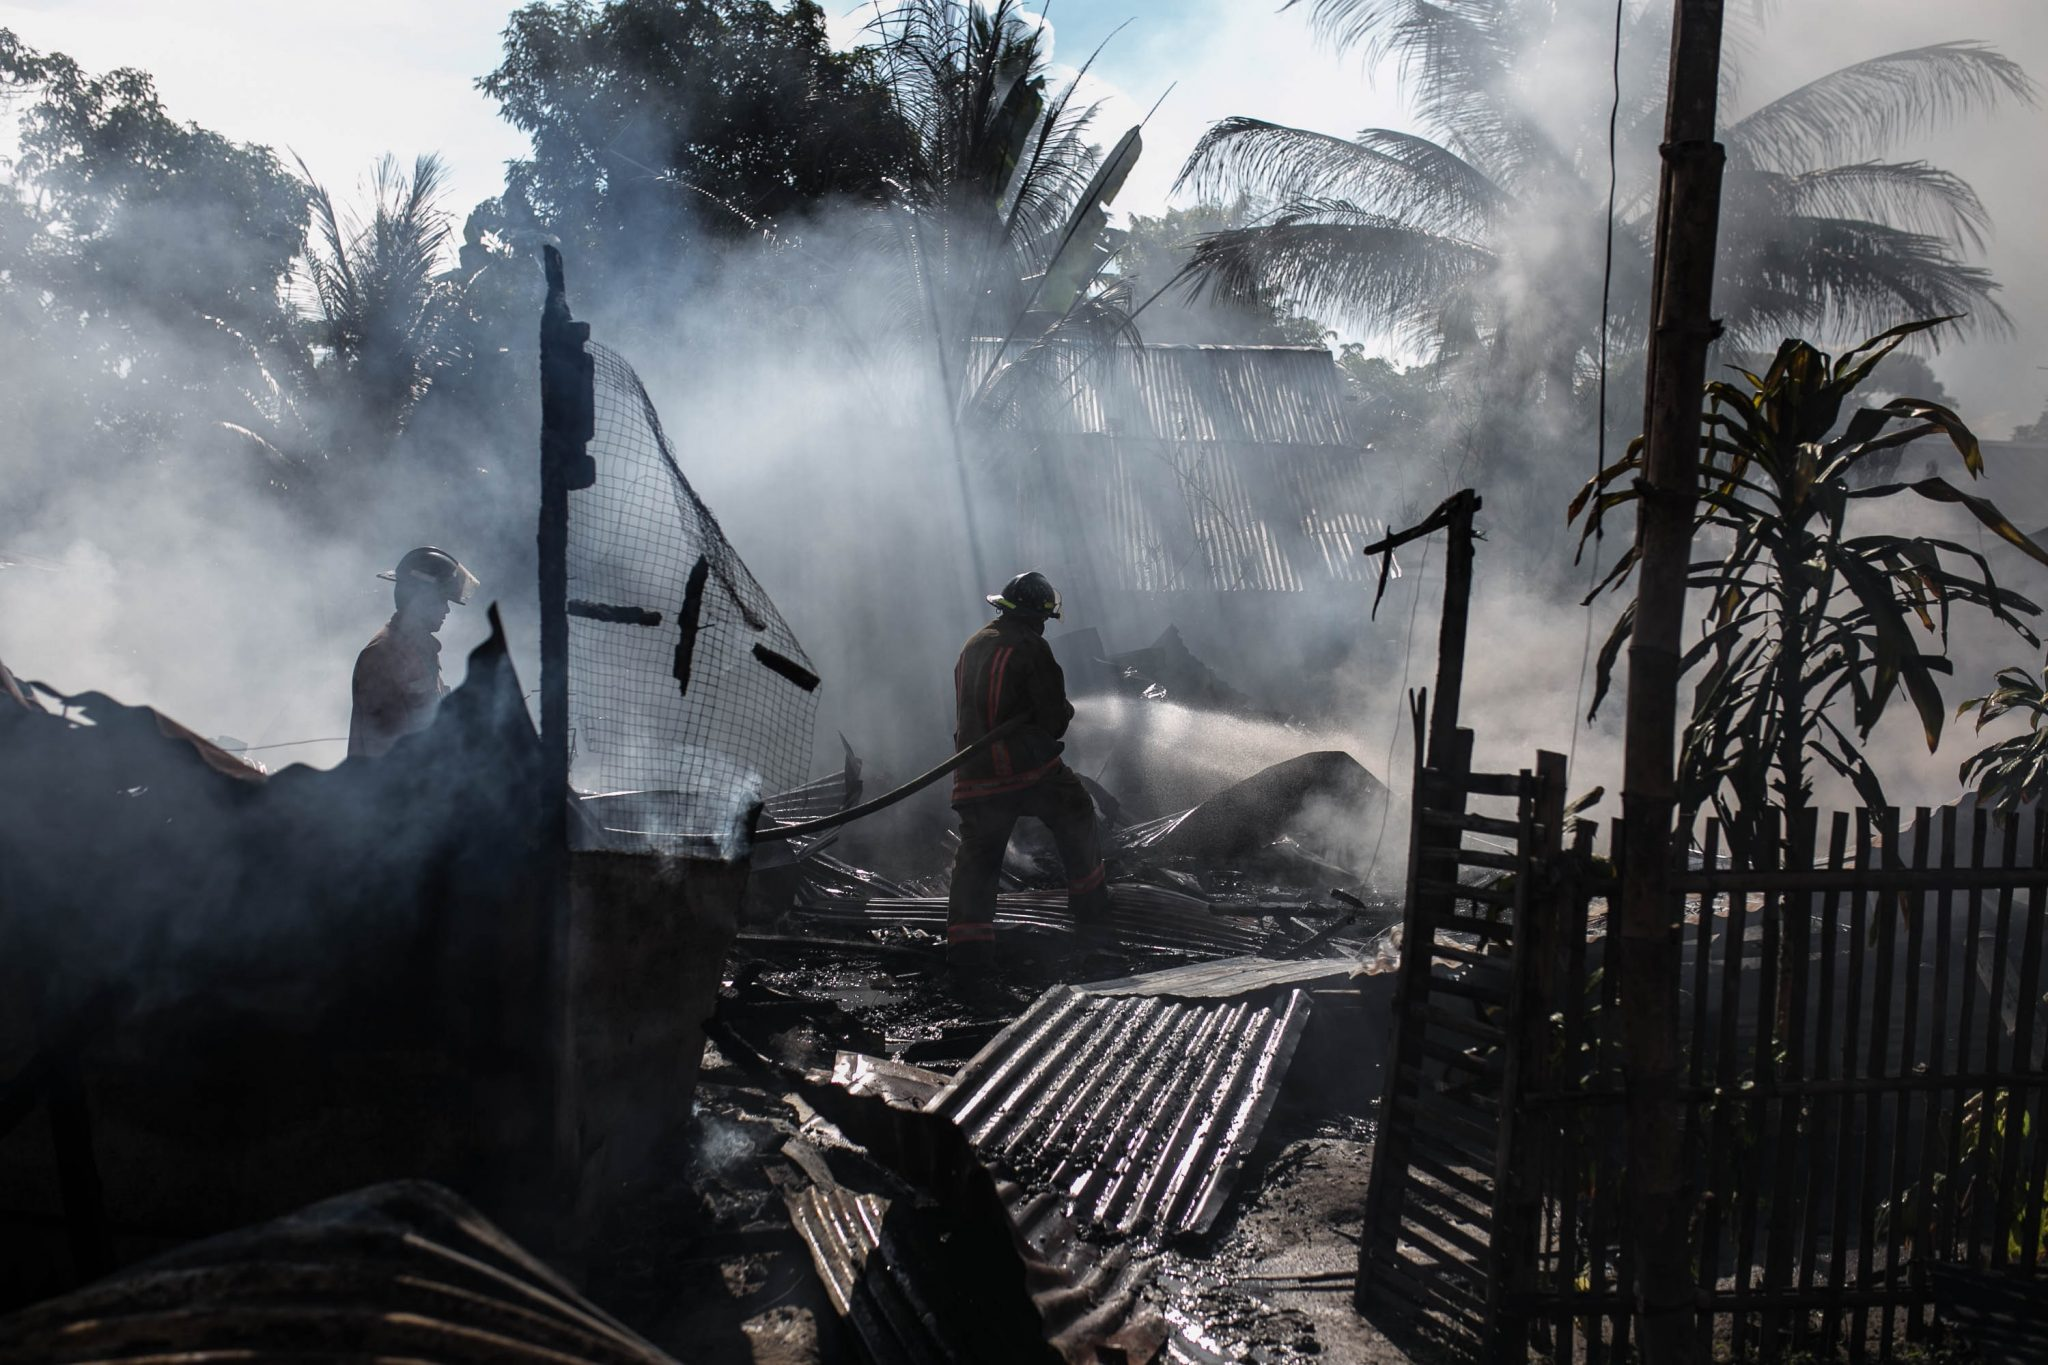 Firefighters putting out a fire in a disaster scene